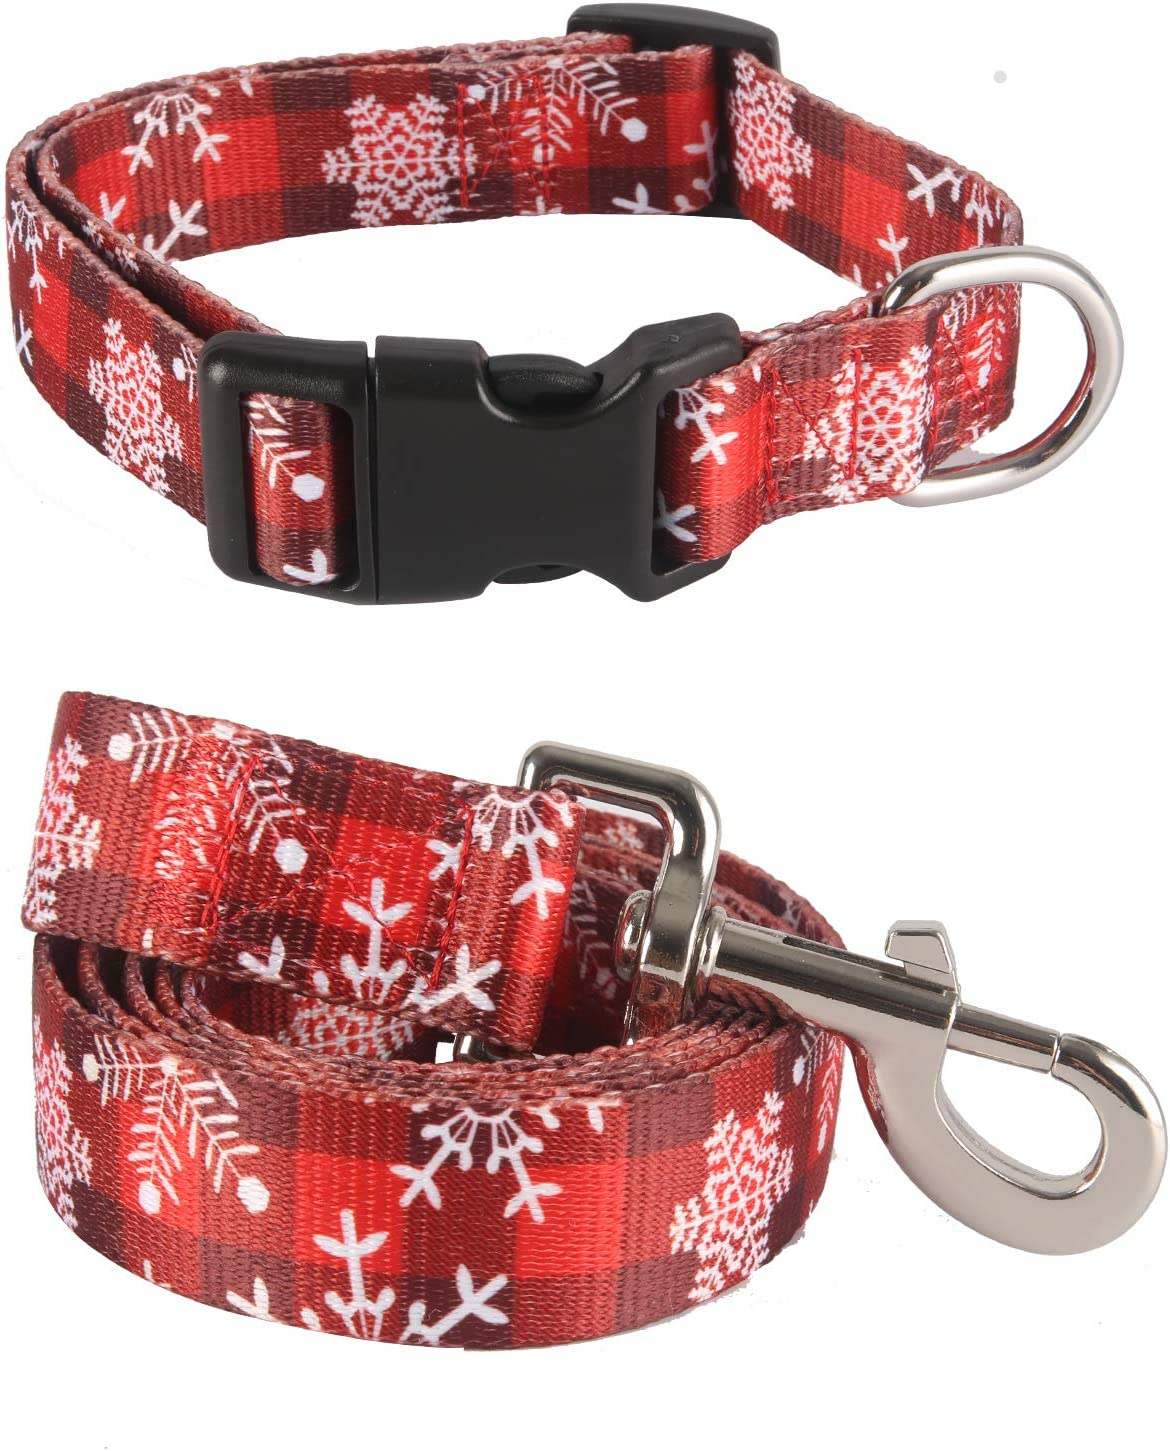 Coomour Dog Christmas Industry No. Super popular specialty store 1 Collars with Snowflake Cute Leash Pet Funn